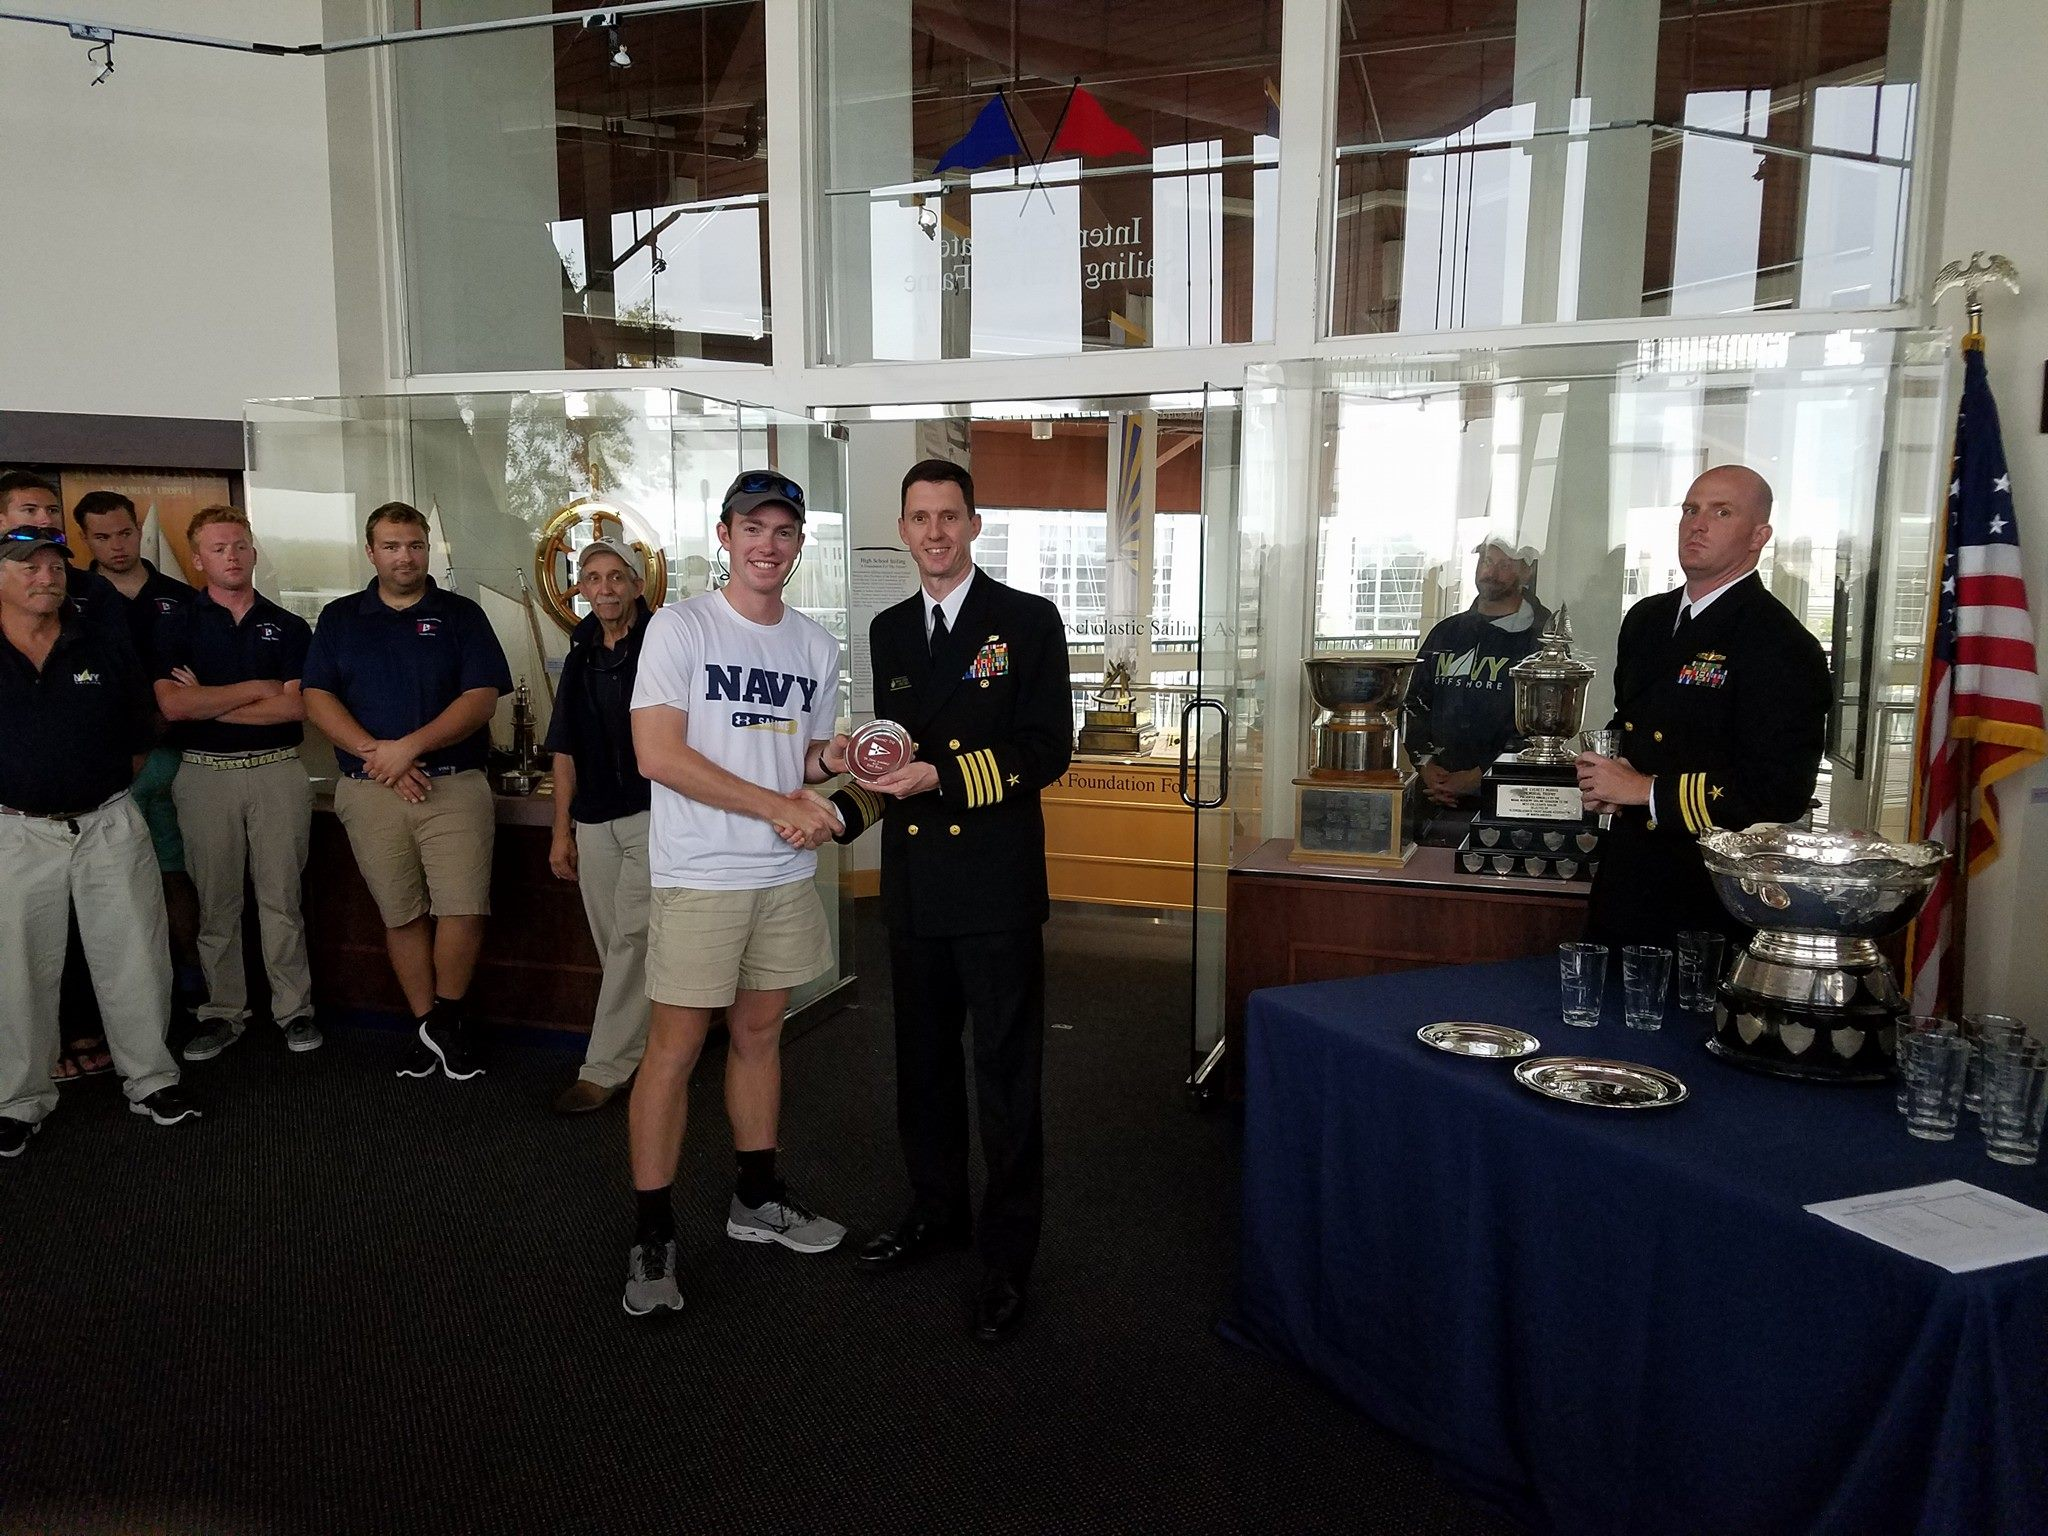 VOST Skipper Teddy Papenthien and his crew proudly represented USNA! Photo from USNA VOST Facebook page